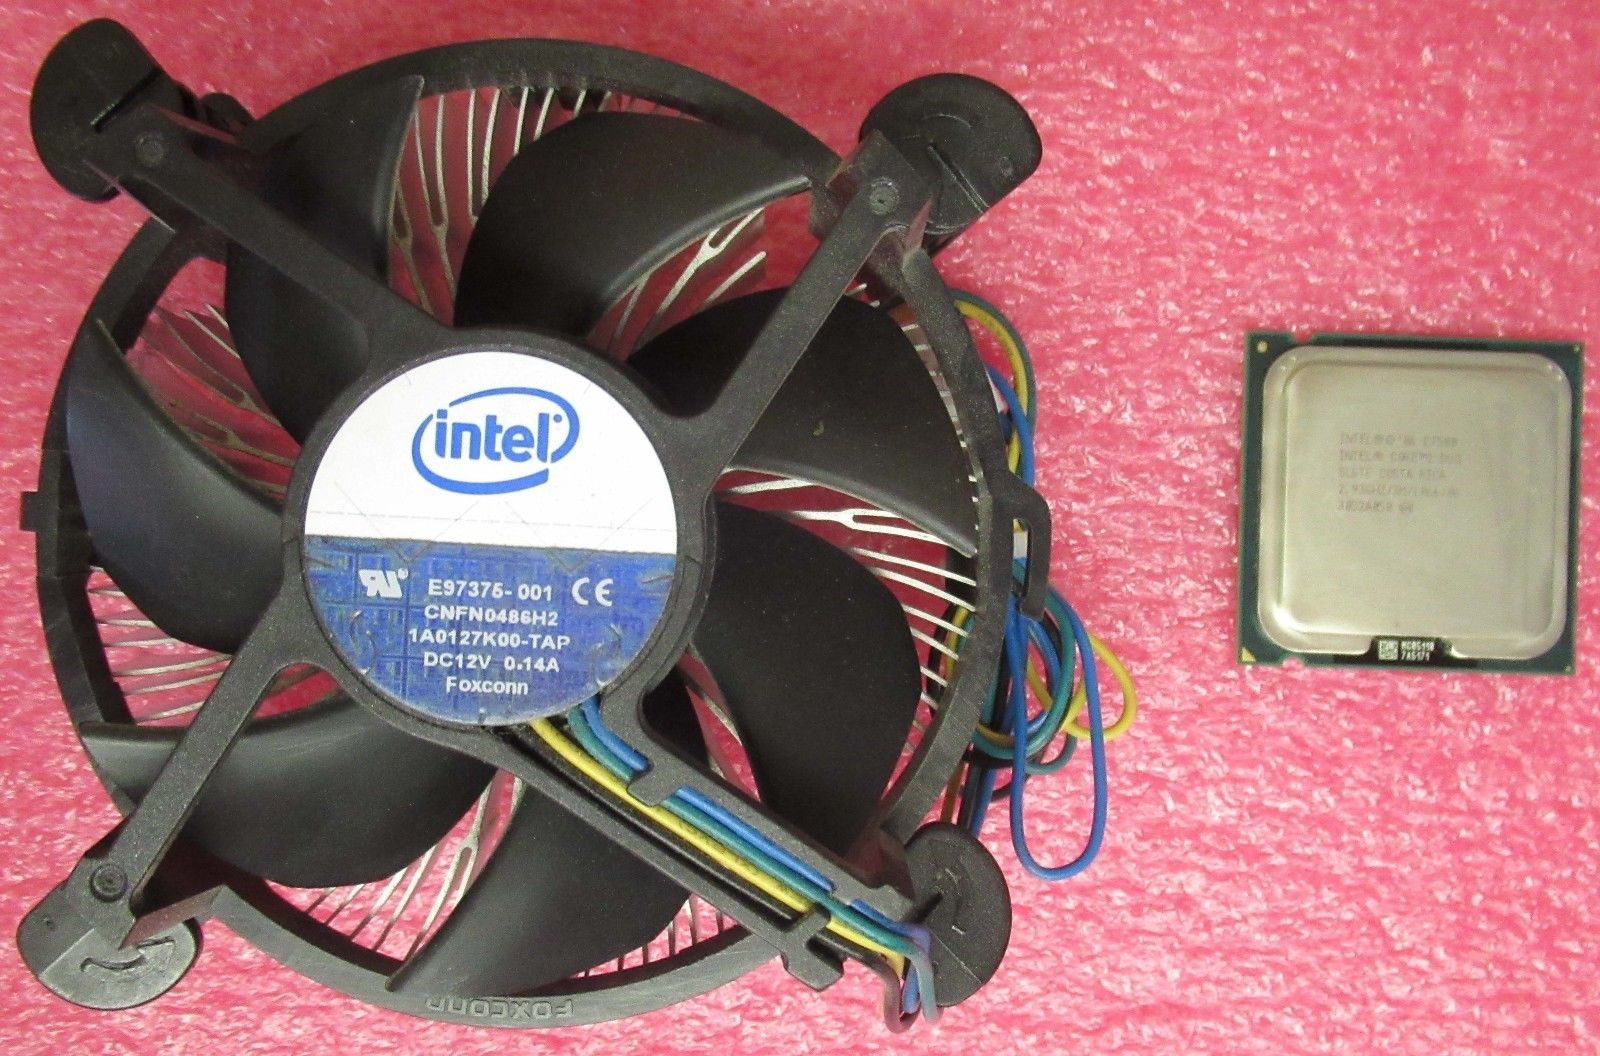 Intel E7500 Core 2 Duo 293ghz 3mb Cache 1066 Mhz Fsb Slgte Prosessor Heatsink Fan